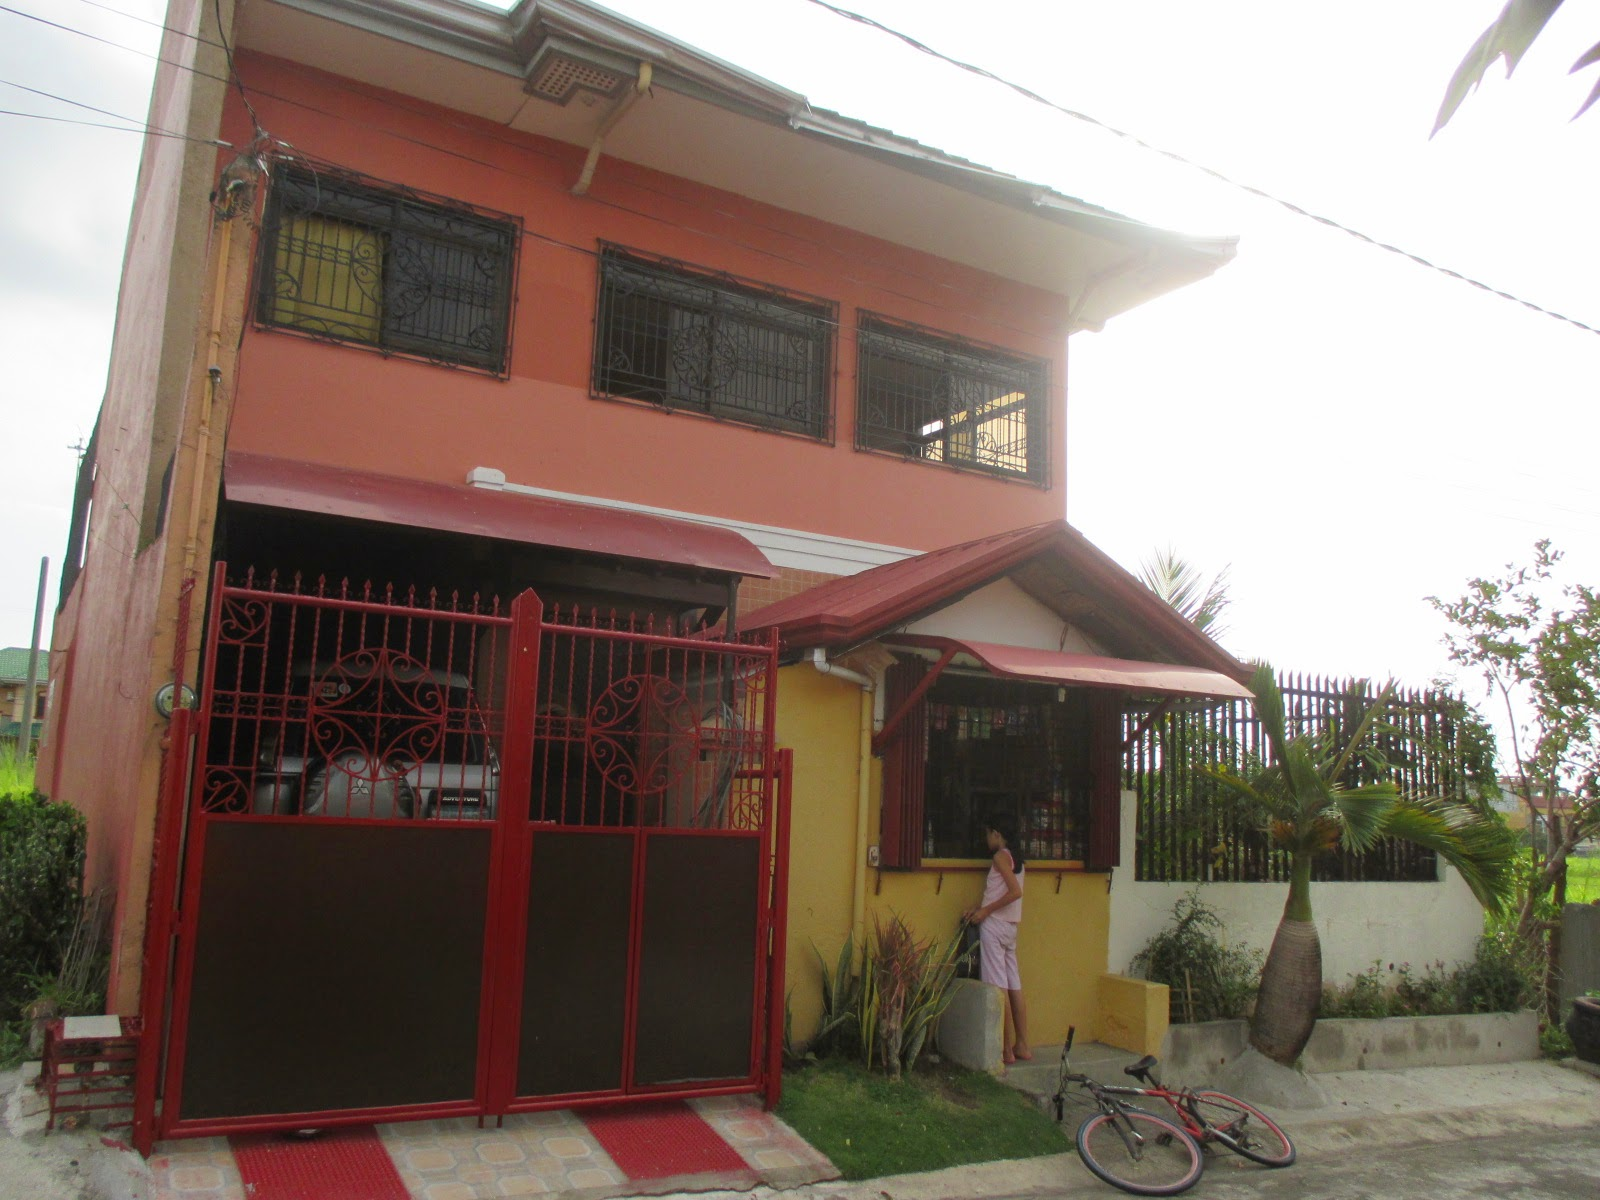 2 Storey 3 Bedroom TB 1 Car Garage With An Operational Sari Store In Front